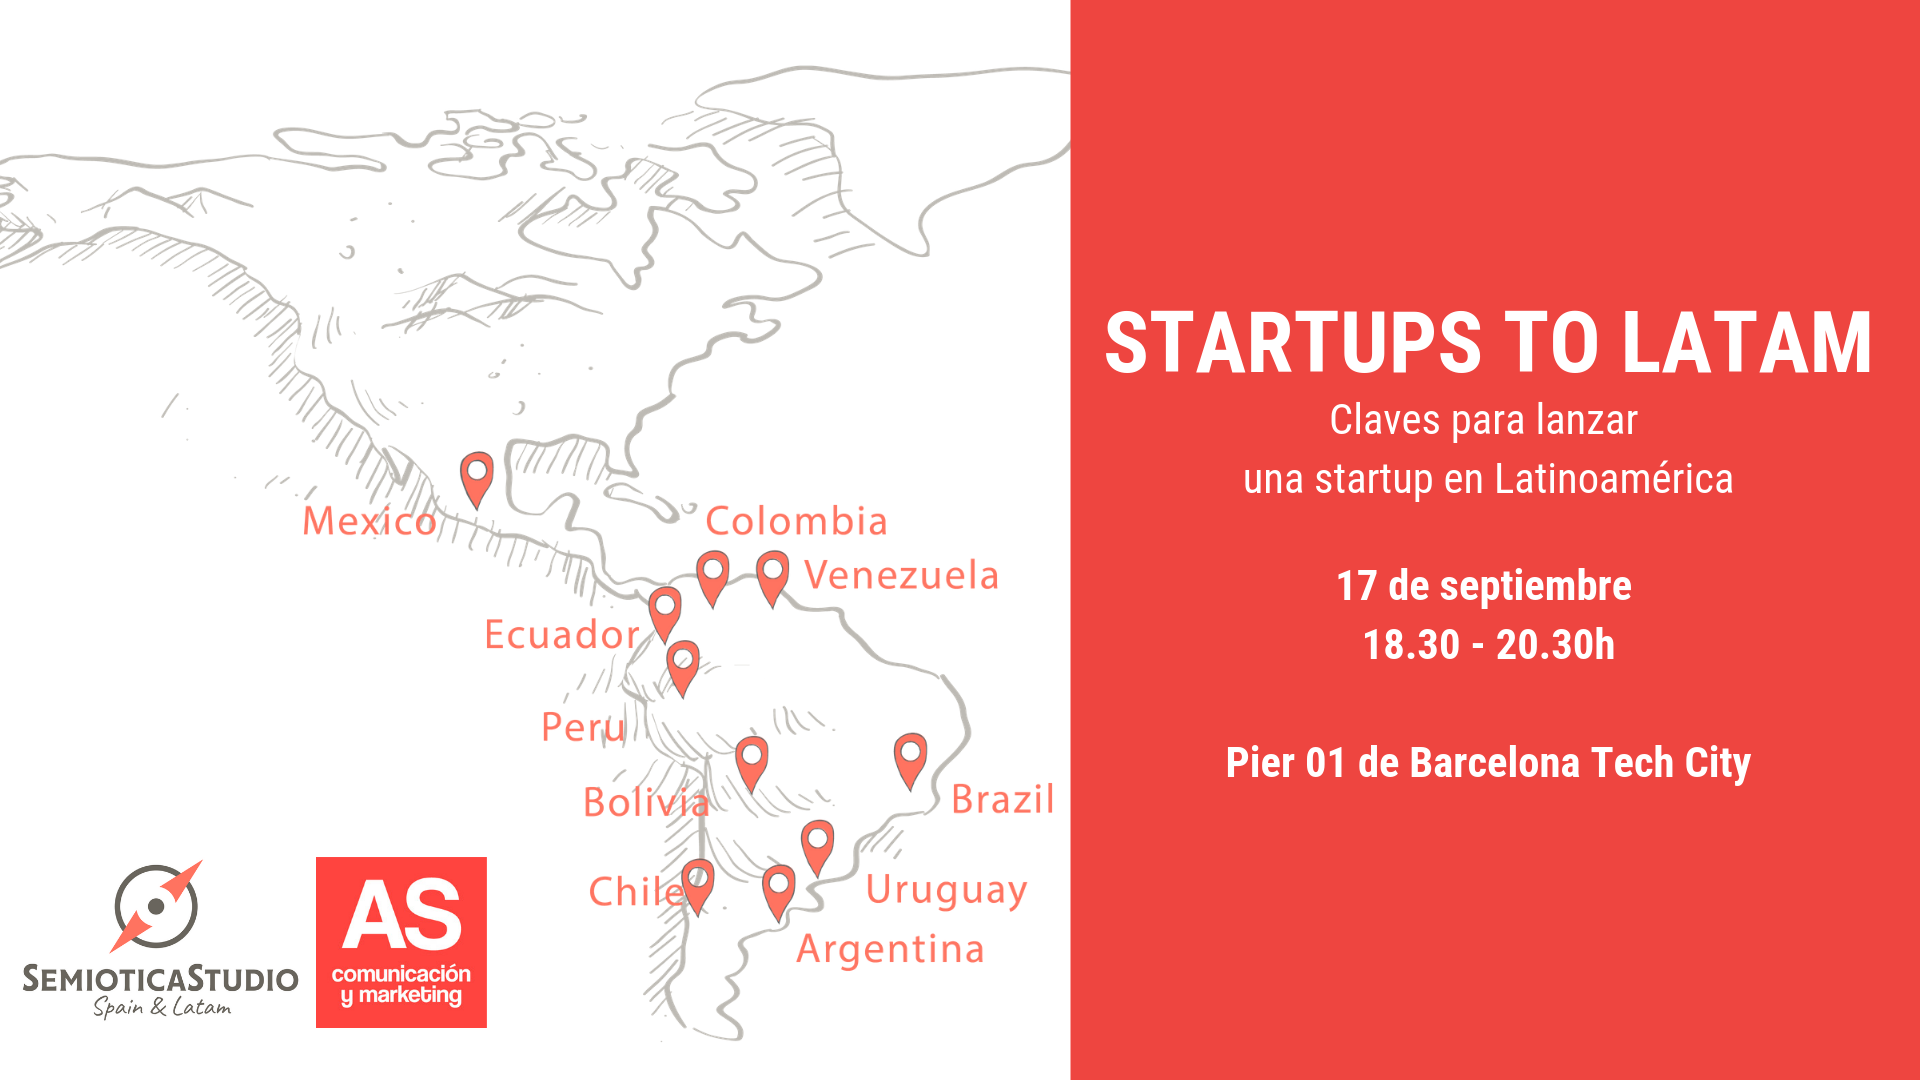 cartel del evento - Startups to Latam